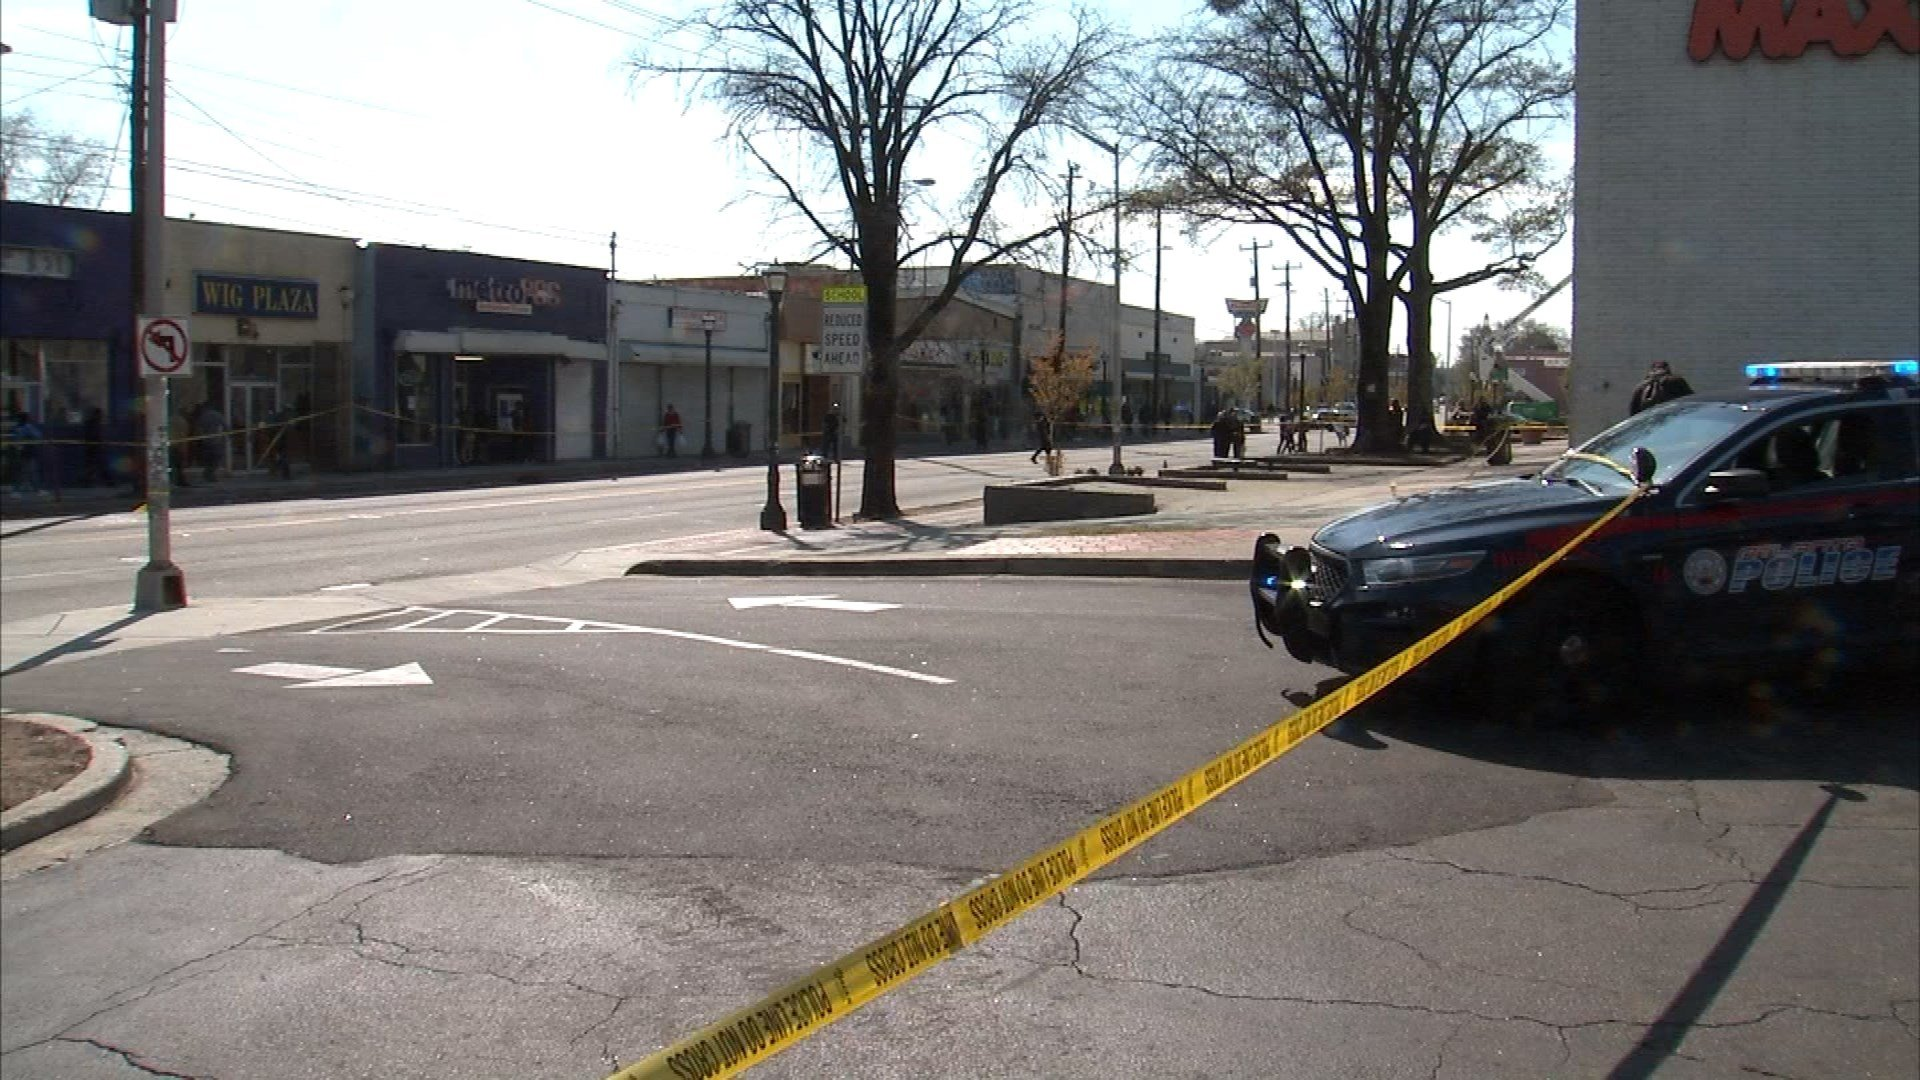 Three people were shot at the Mall West End in Atlanta on Friday, March 17, 2017. (SOURCE: WGCL)